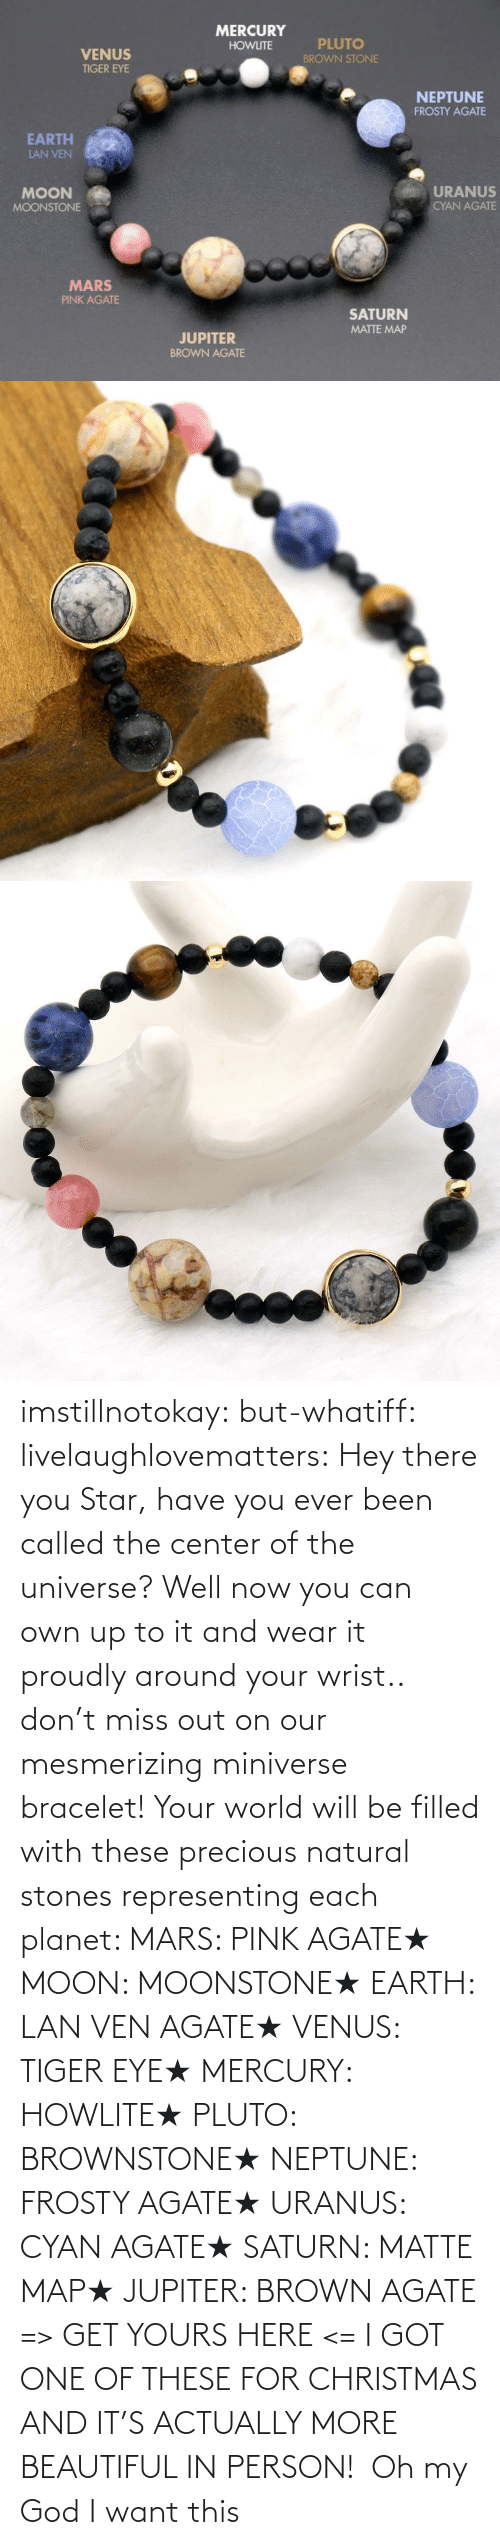 for christmas: imstillnotokay: but-whatiff:  livelaughlovematters:  Hey there you Star, have you ever been called the center of the universe? Well now you can own up to it and wear it proudly around your wrist.. don't miss out on our mesmerizing miniverse bracelet! Your world will be filled with these precious natural stones representing each planet:  MARS: PINK AGATE★ MOON: MOONSTONE★ EARTH: LAN VEN AGATE★ VENUS: TIGER EYE★ MERCURY: HOWLITE★ PLUTO: BROWNSTONE★ NEPTUNE: FROSTY AGATE★ URANUS: CYAN AGATE★ SATURN: MATTE MAP★ JUPITER: BROWN AGATE => GET YOURS HERE <=  I GOT ONE OF THESE FOR CHRISTMAS AND IT'S ACTUALLY MORE BEAUTIFUL IN PERSON!     Oh my God I want this